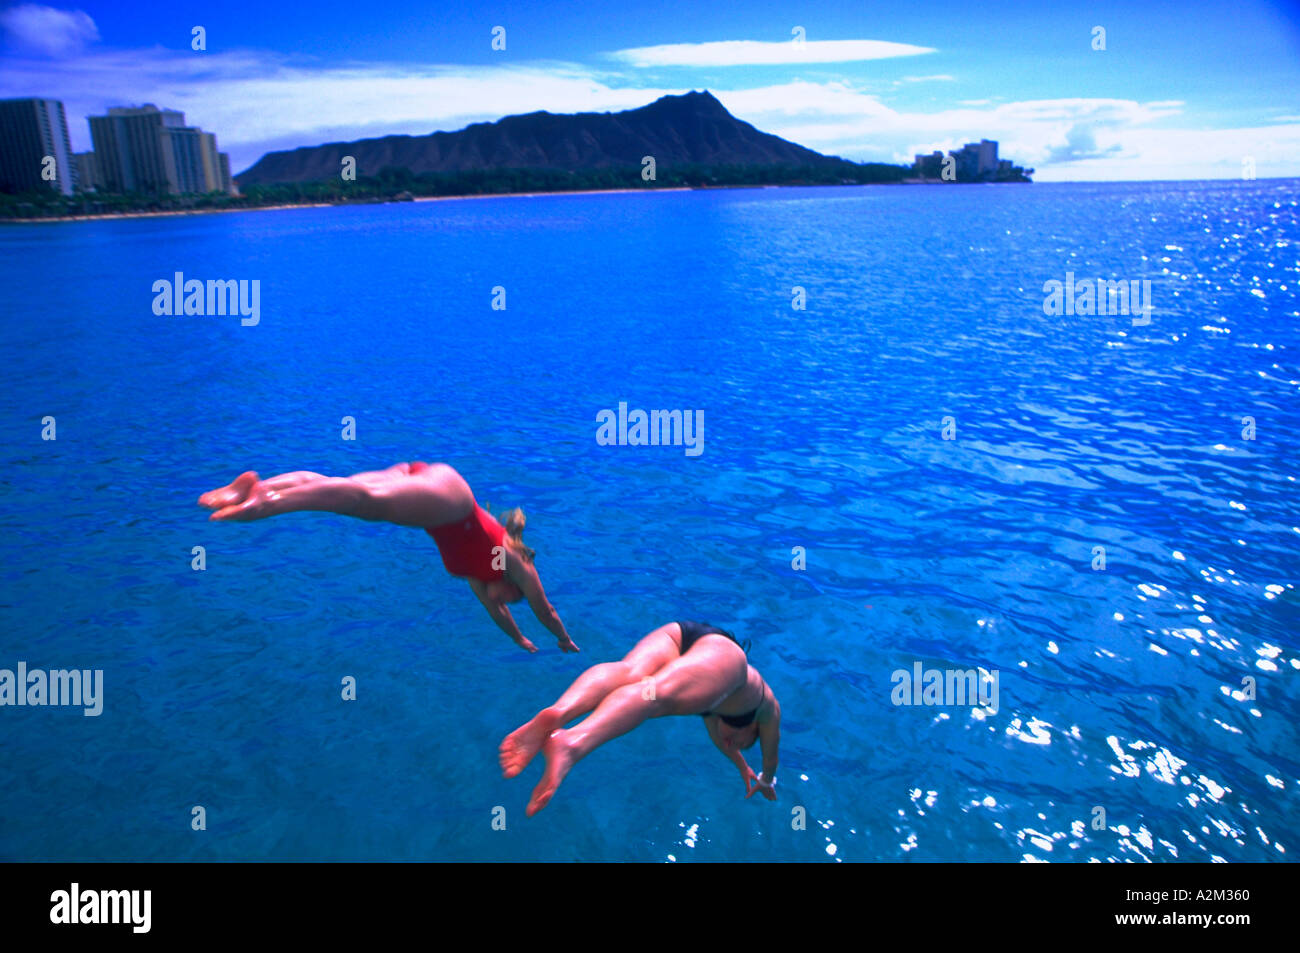 Two people diving into the crystal blue water off Waikiki Hawaii - Stock Image